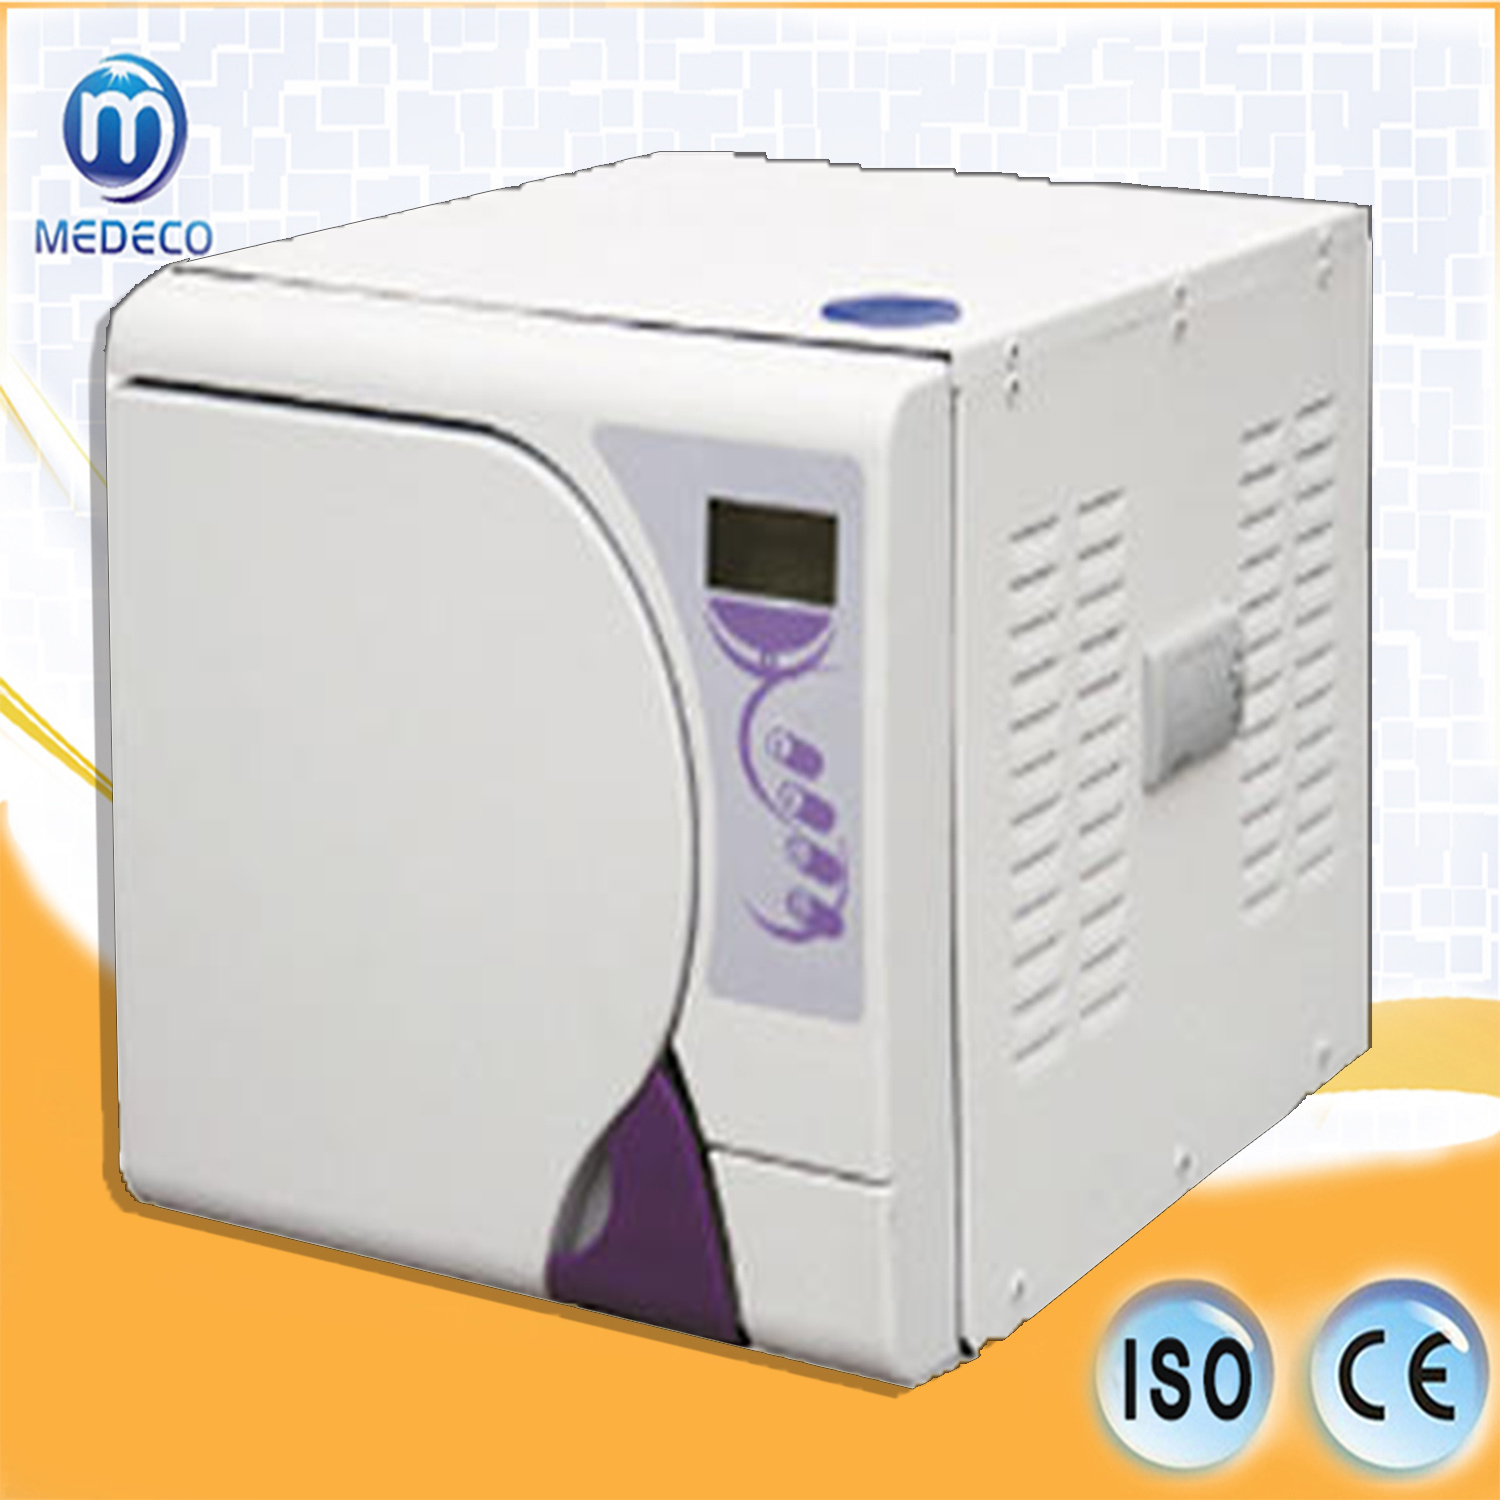 Table Top Steam Sterilizer Me-Xd12DV/20DV/24DV, Medical Equipment